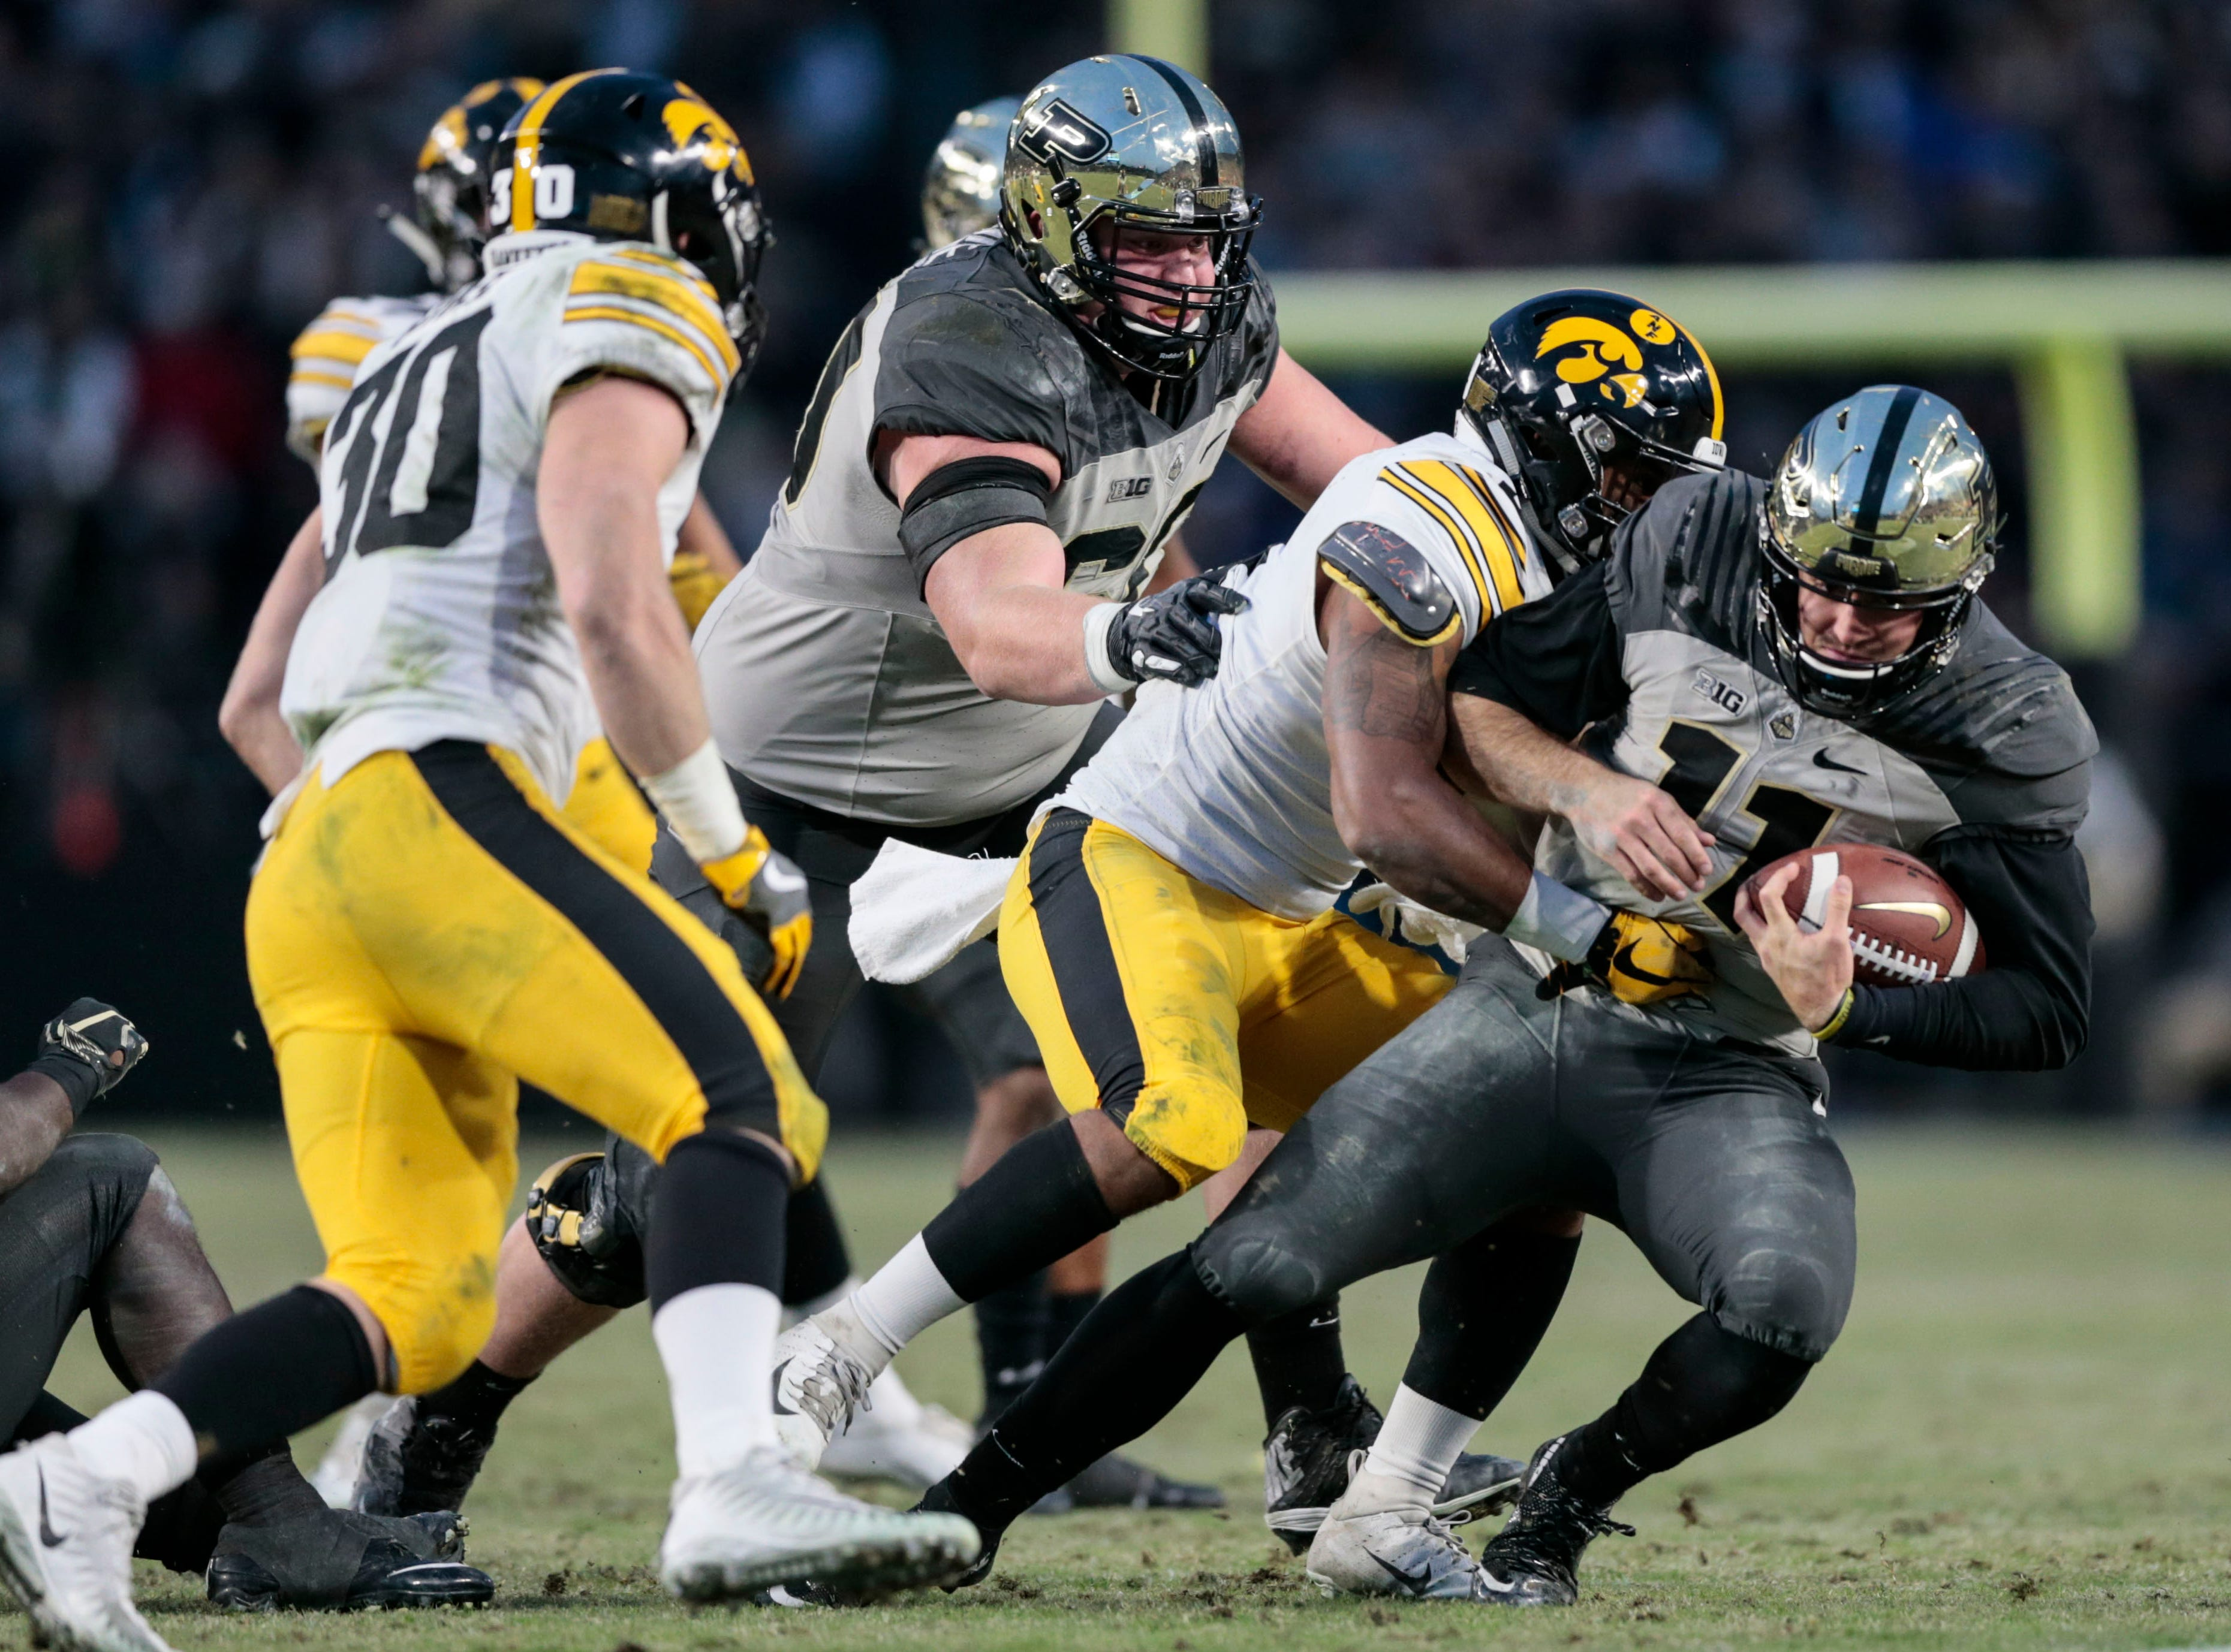 Purdue quarterback David Blough, right, gets tackled by Iowa defensive back Geno Stone (9) in the second half of an NCAA college football game in West Lafayette, Ind., Saturday, Nov. 3, 2018.